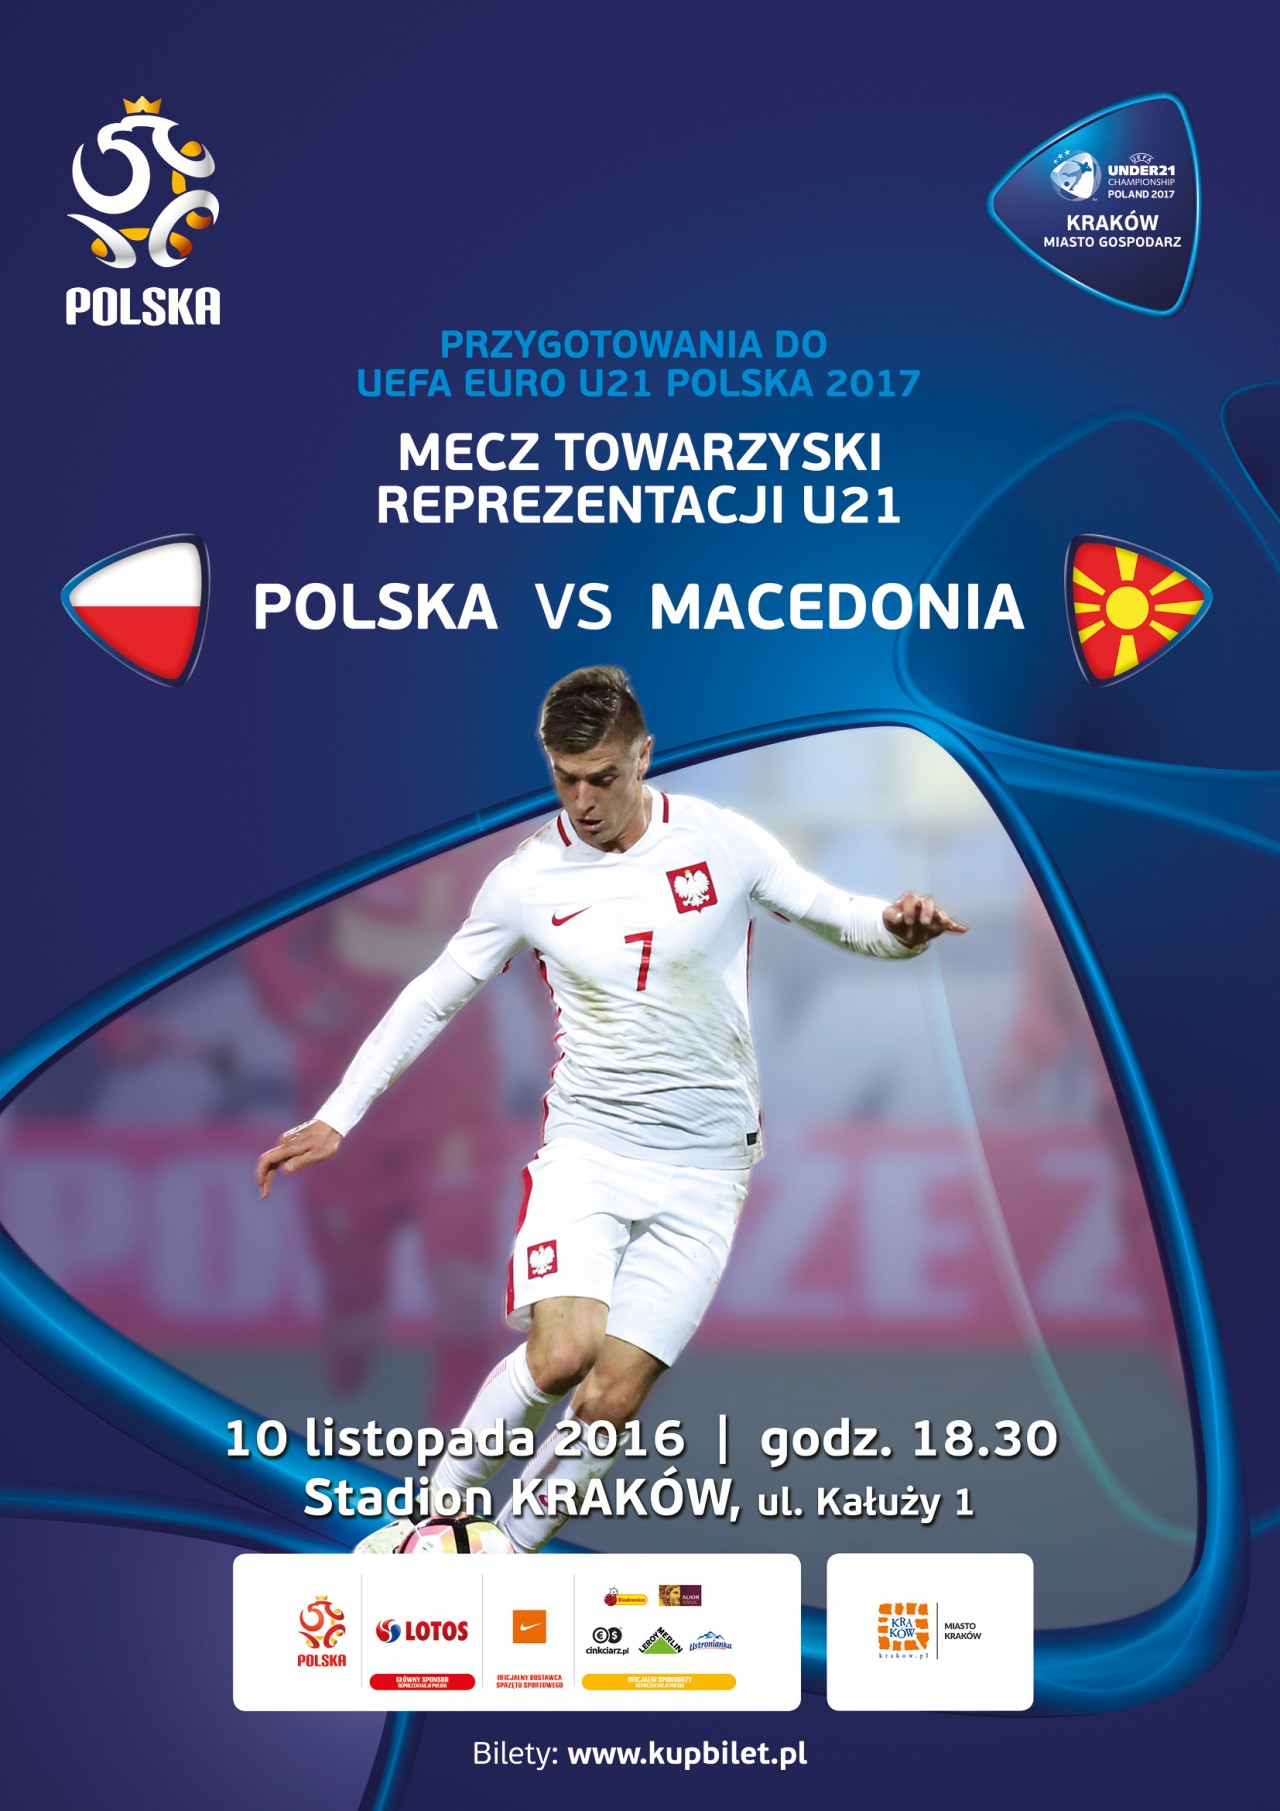 Polish poster for the game; photo: PZNP